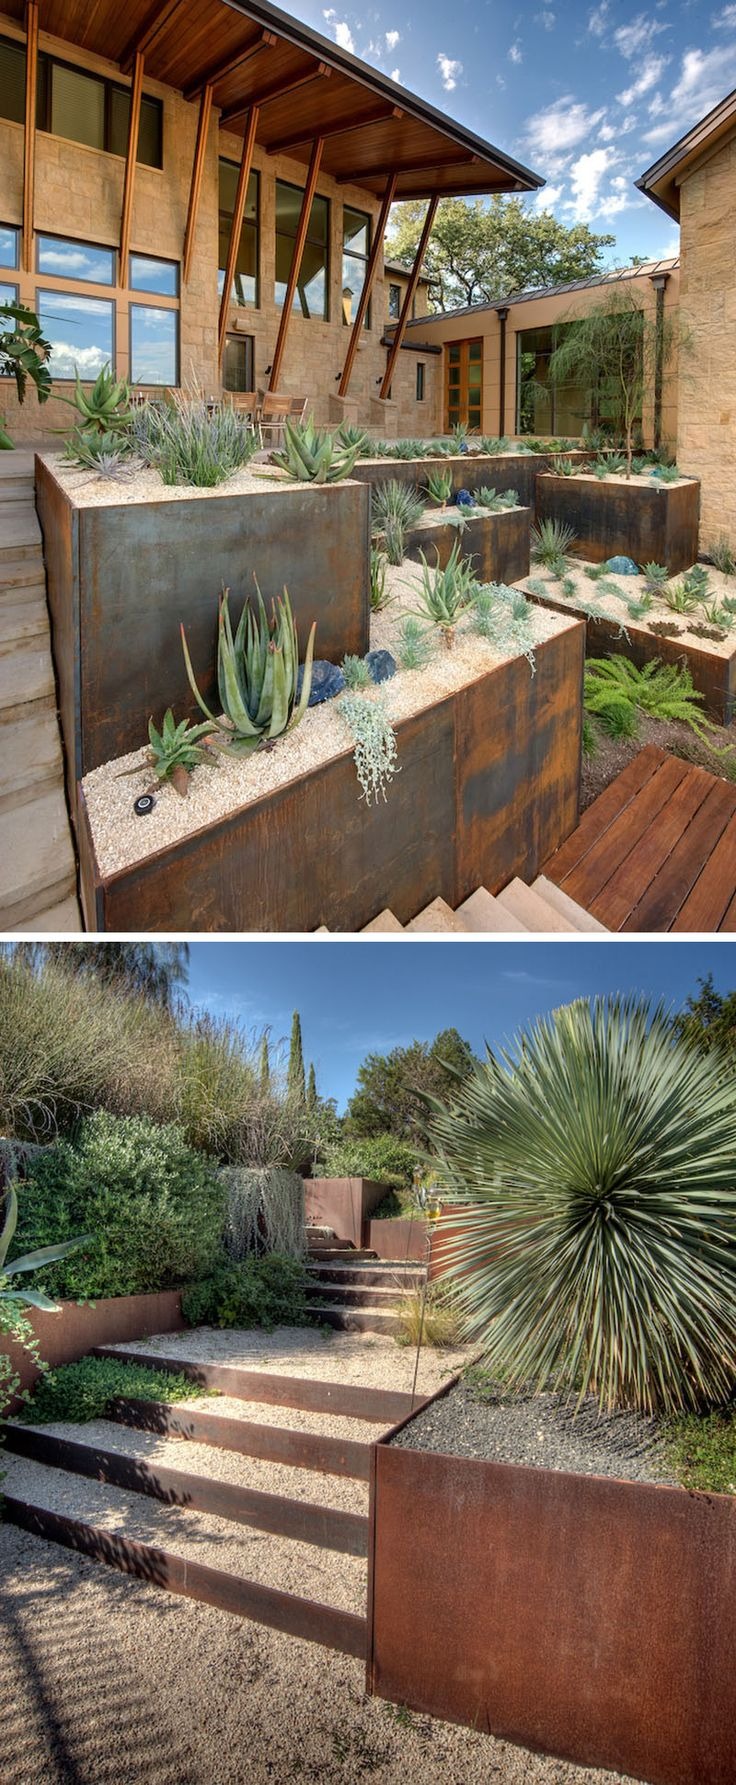 9 Ideas For Including Weathering Steel Planters In Your Garden // The use of…